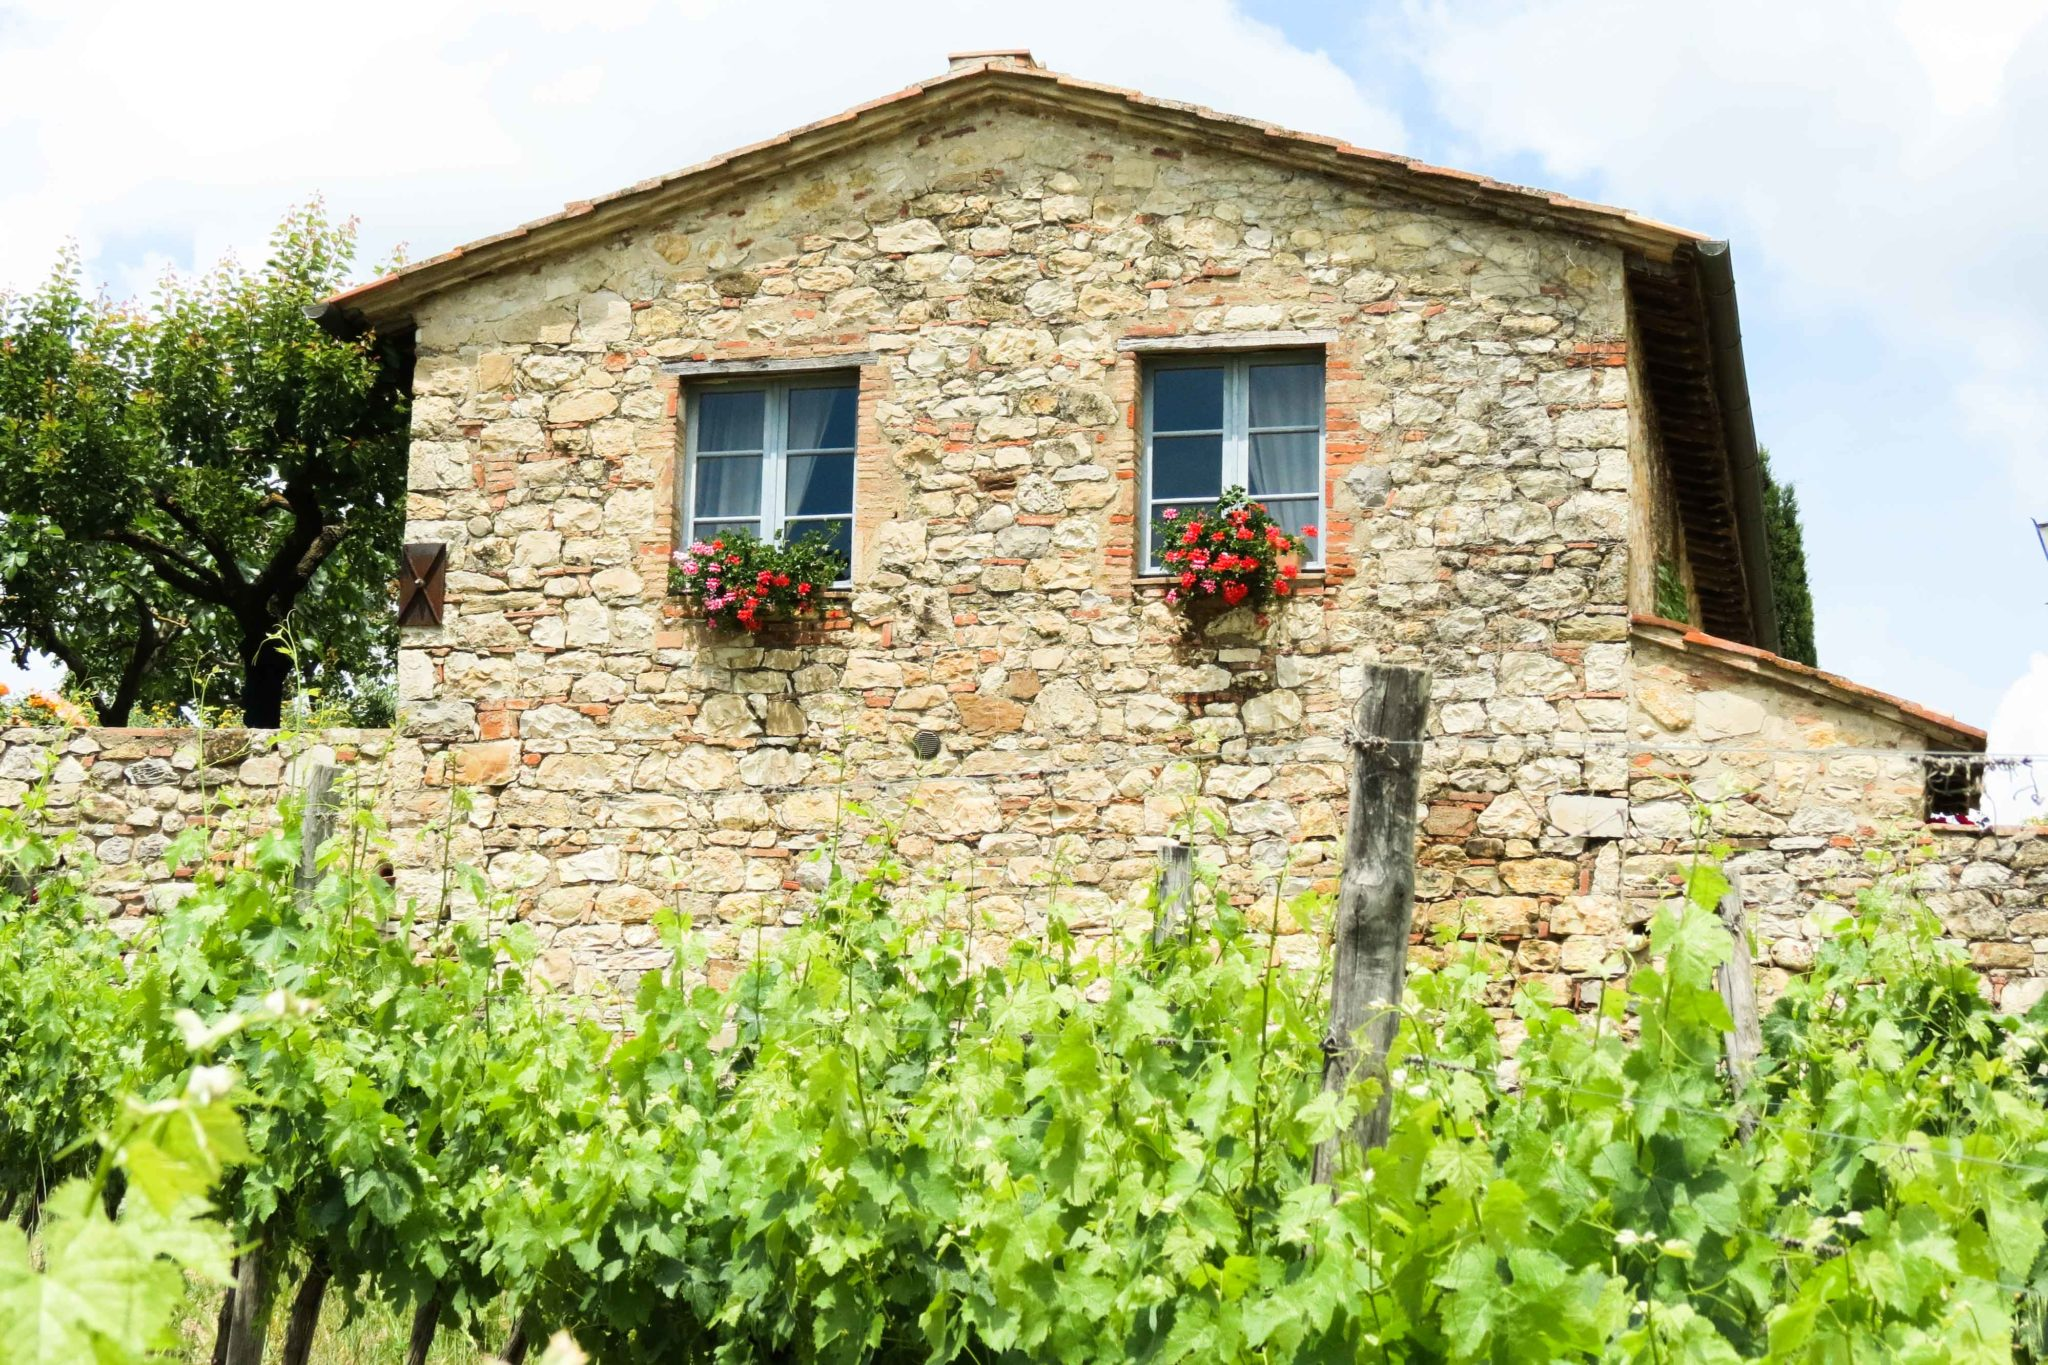 Piccola villa outside - bed and breakfast in Chianti Siena Tuscany